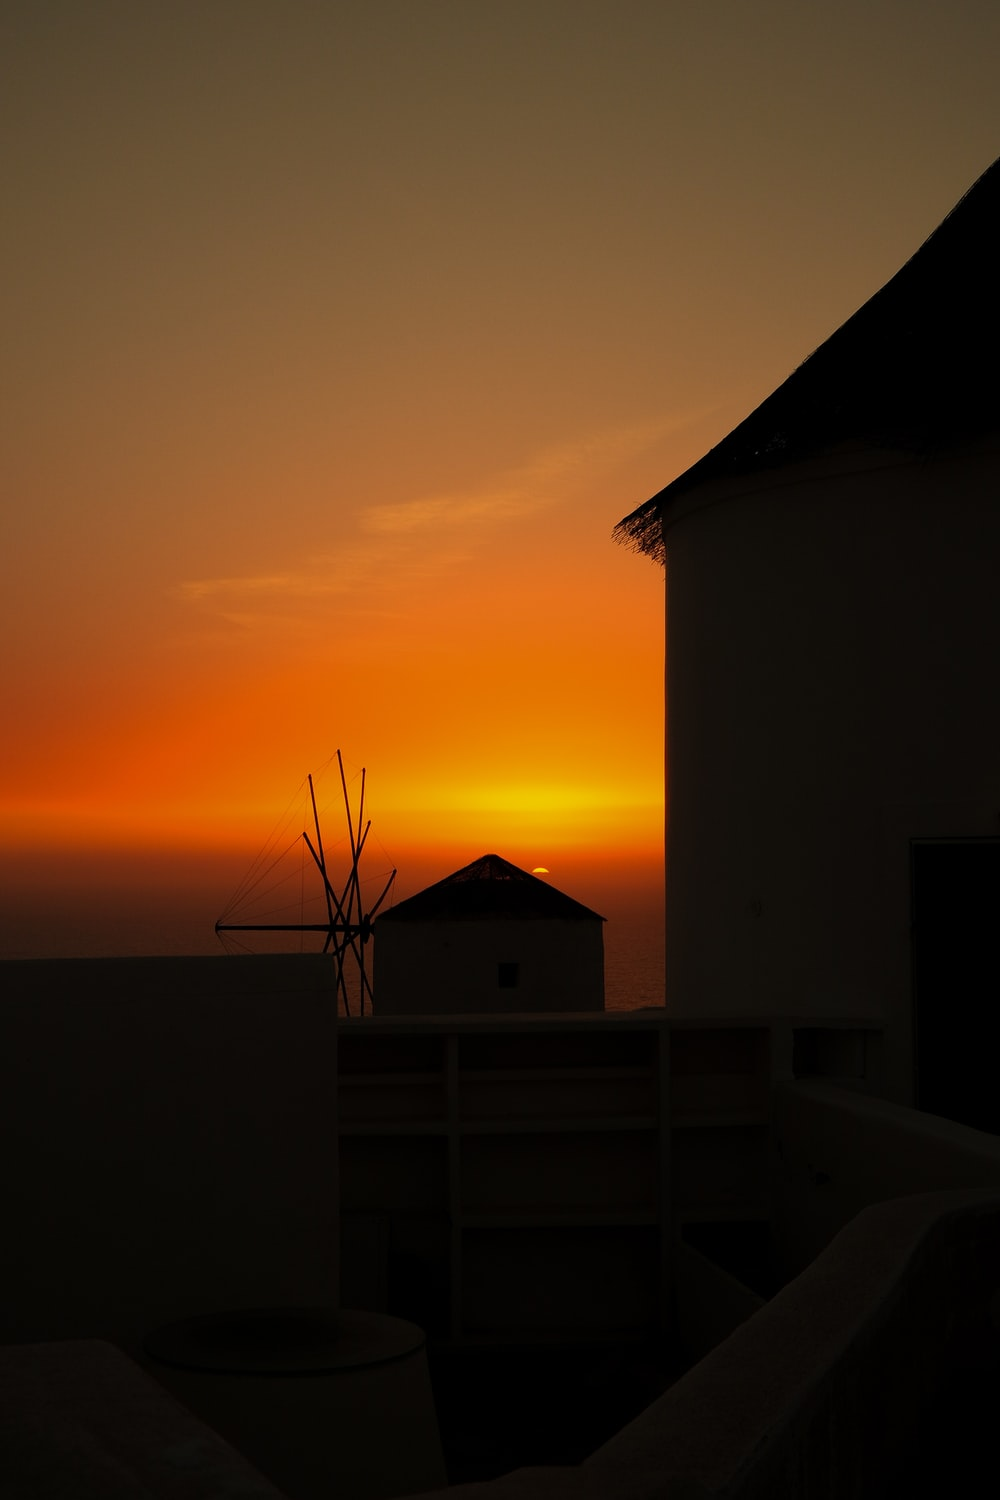 silhouette of house during golden hour